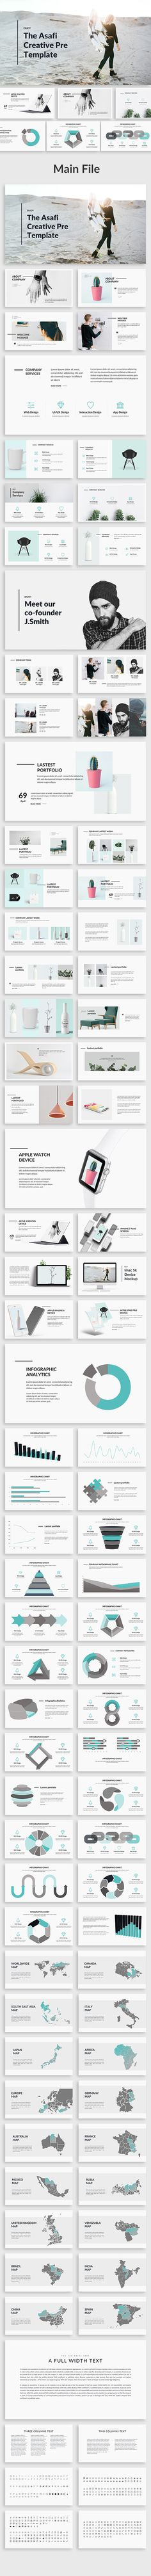 Asafi  Creative Powerpoint Template — Powerpoint PPT #customizable #International Food • Download ➝ https://graphicriver.net/item/asafi-creative-powerpoint-template/19716840?ref=pxcr